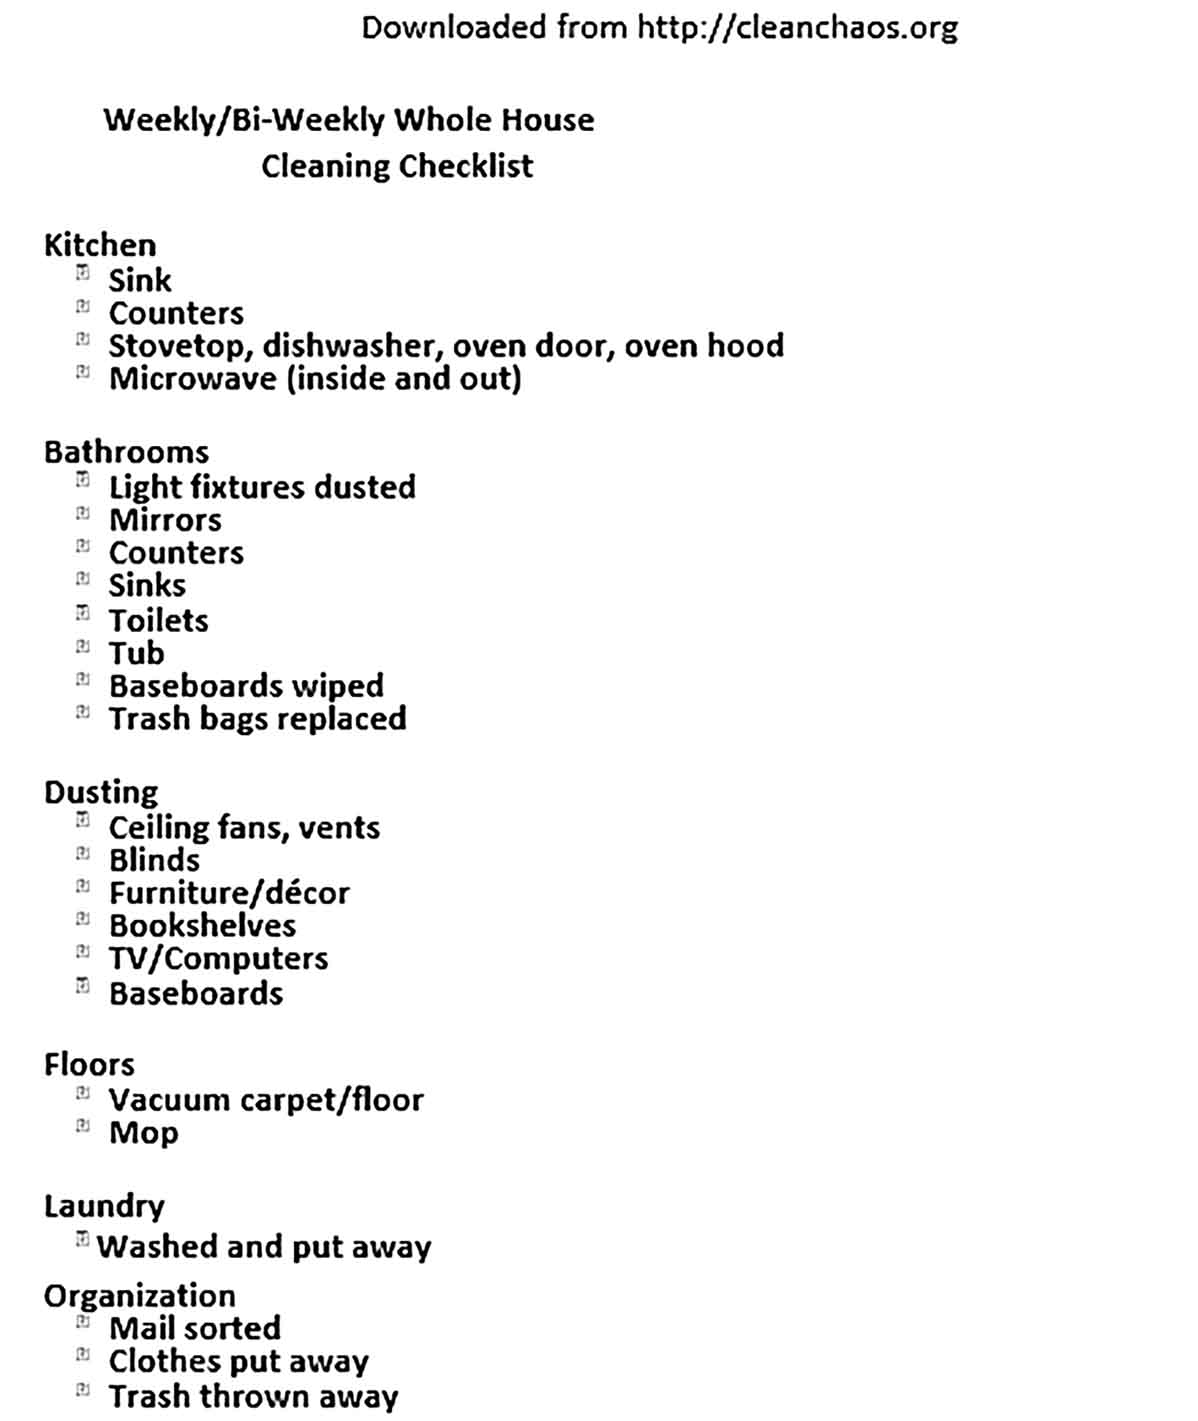 Template Bi Weekly Whole House Cleaning Checklist Sample